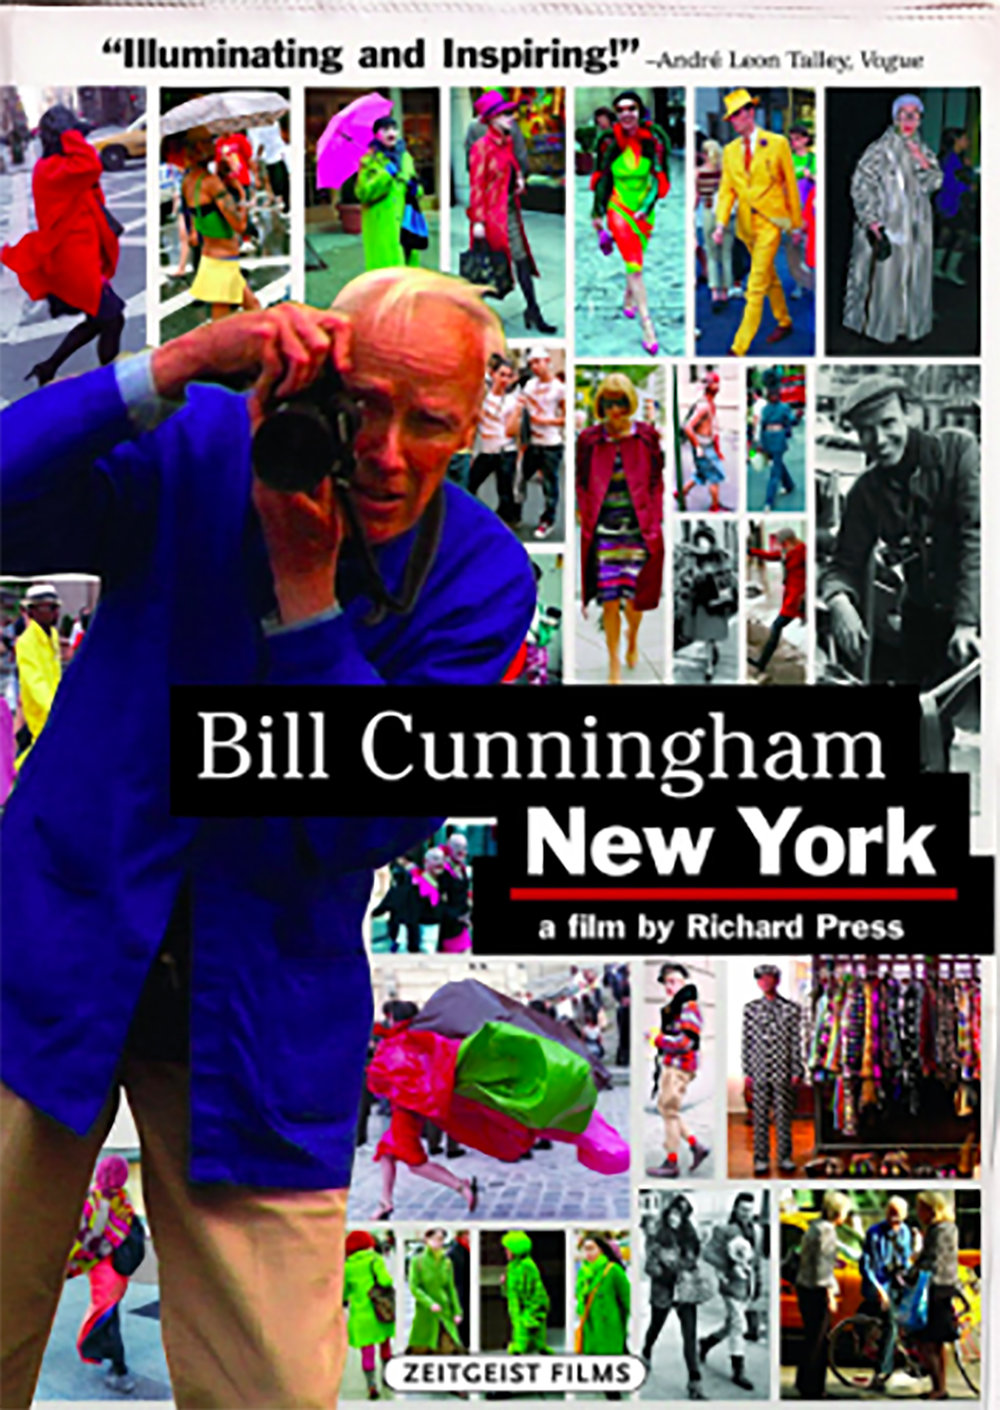 - Bill Cunningham New York (2011)Bill Cunningham was an American fashion photographer for The New York Times, known for his candid and street photography. An icon, Bill would ride his bike through the streets of New York City and  capture real people with style.